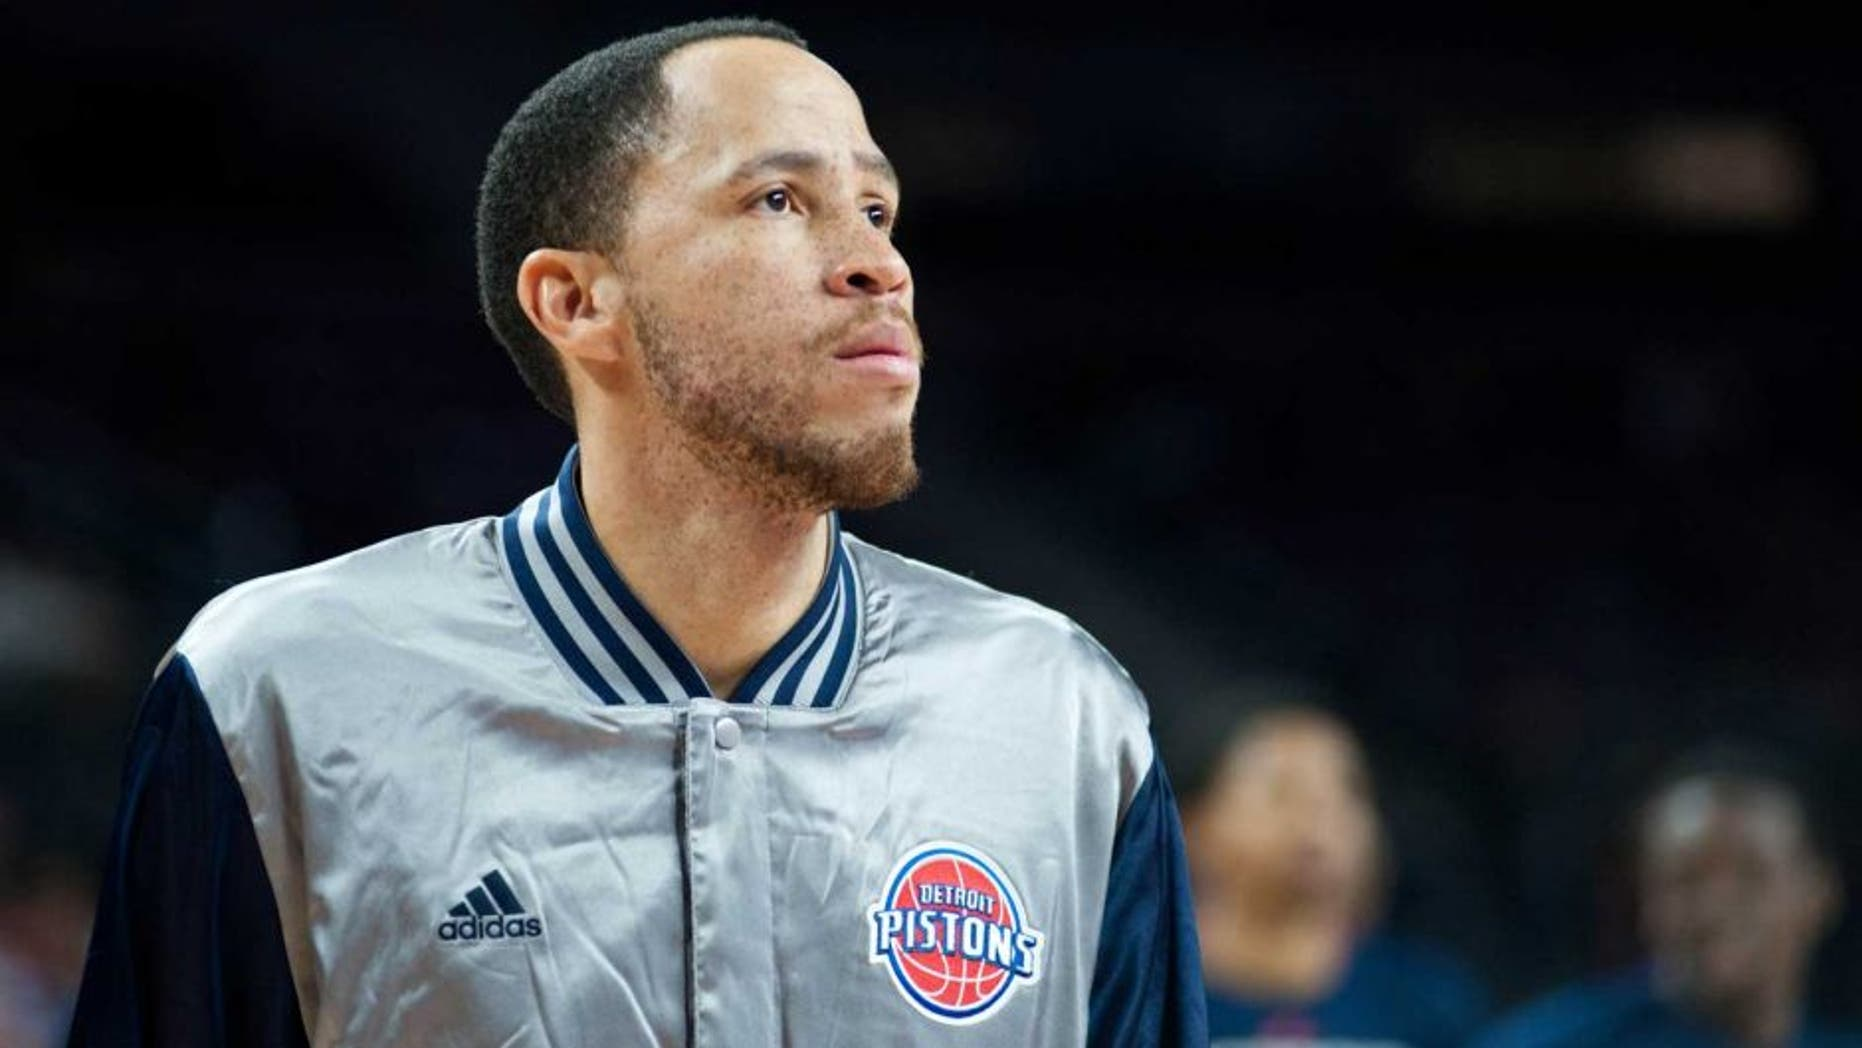 Feb 22, 2015; Auburn Hills, MI, USA; Detroit Pistons forward Tayshaun Prince (22) warms up before the game against the Washington Wizards at The Palace of Auburn Hills. Mandatory Credit: Tim Fuller-USA TODAY Sports